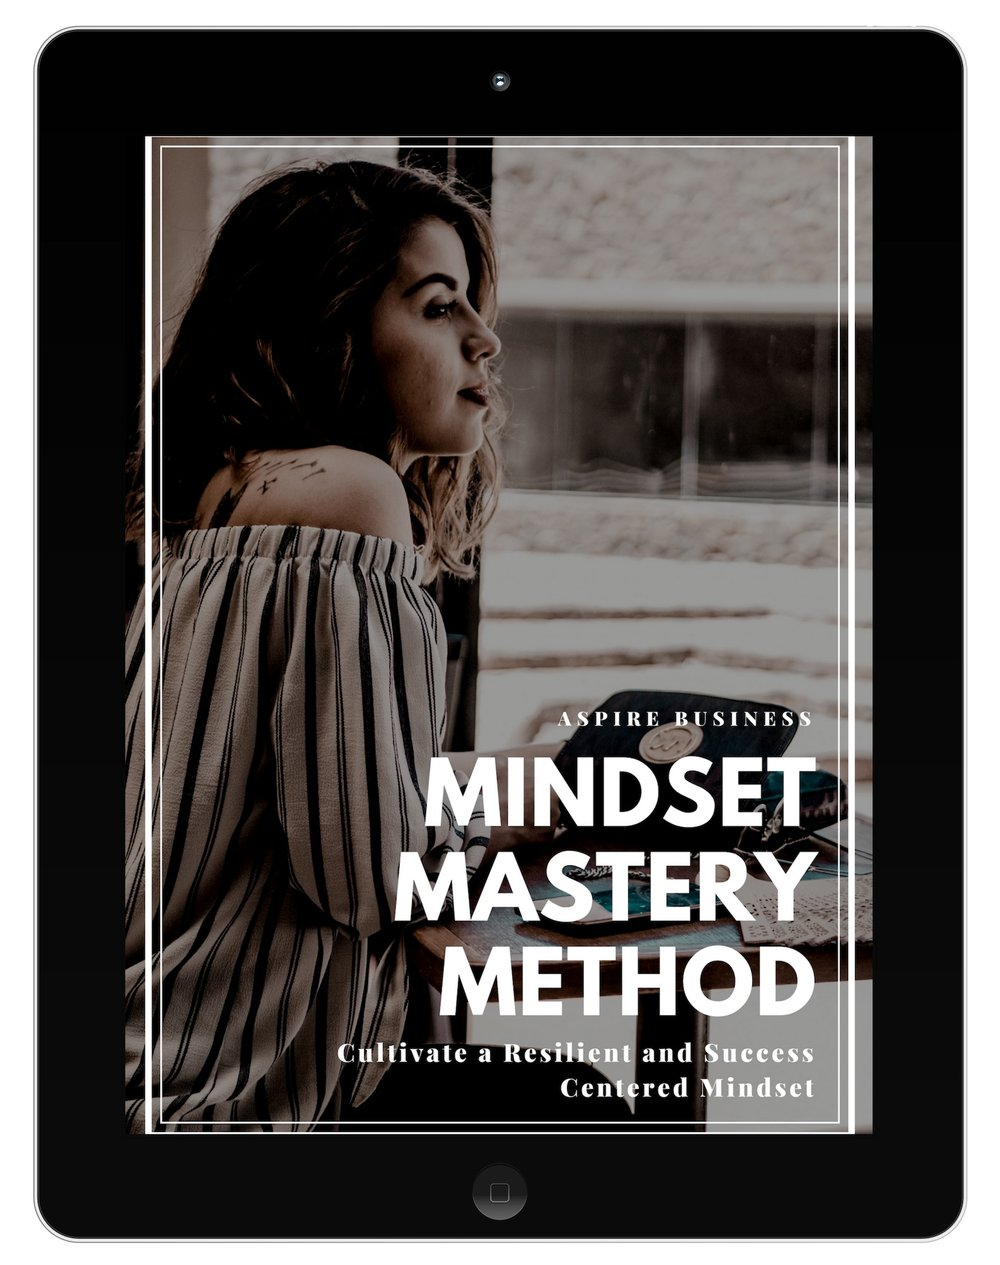 Mindset Mastery Method